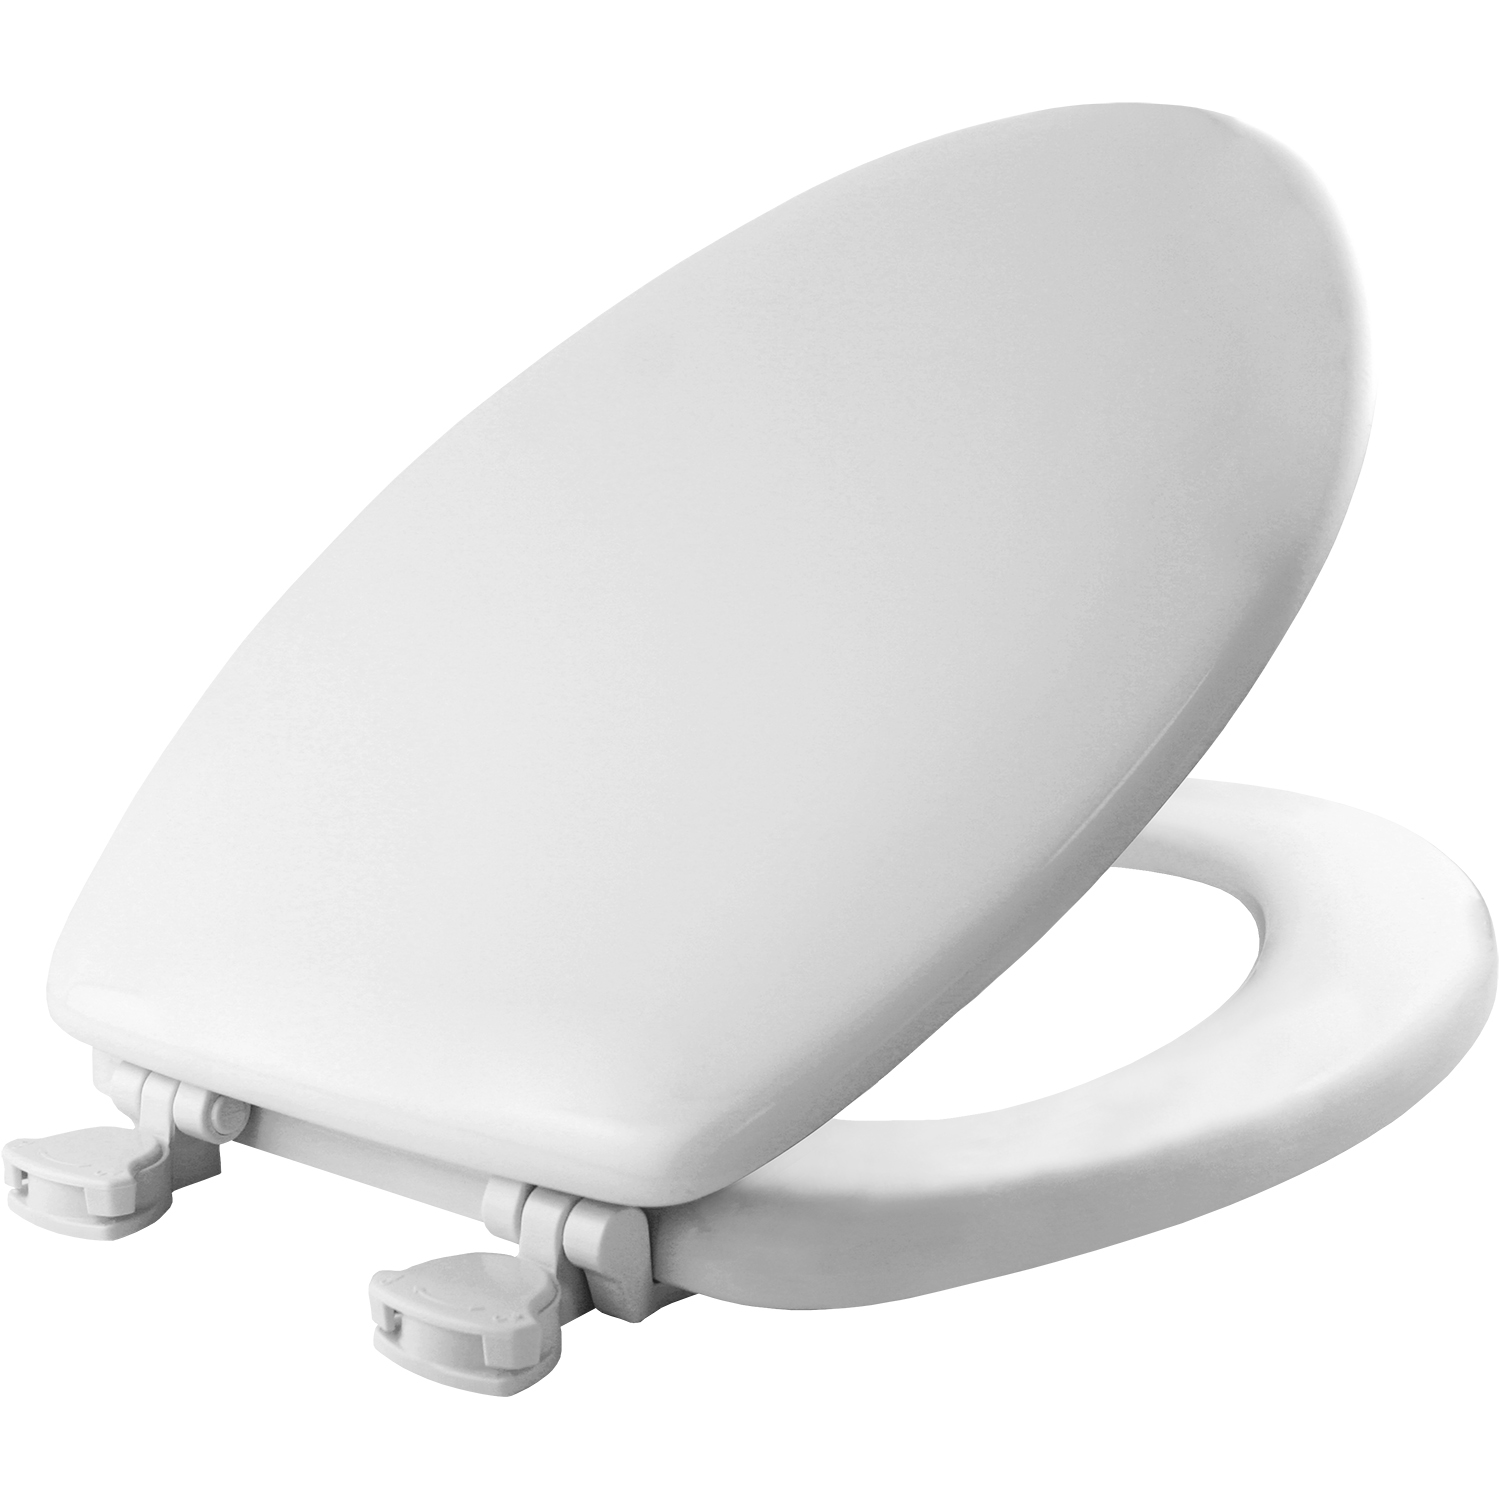 MAYFAIR Elongated Enameled Wood Toilet Seat in White with Easy•Clean & Change® Hinge